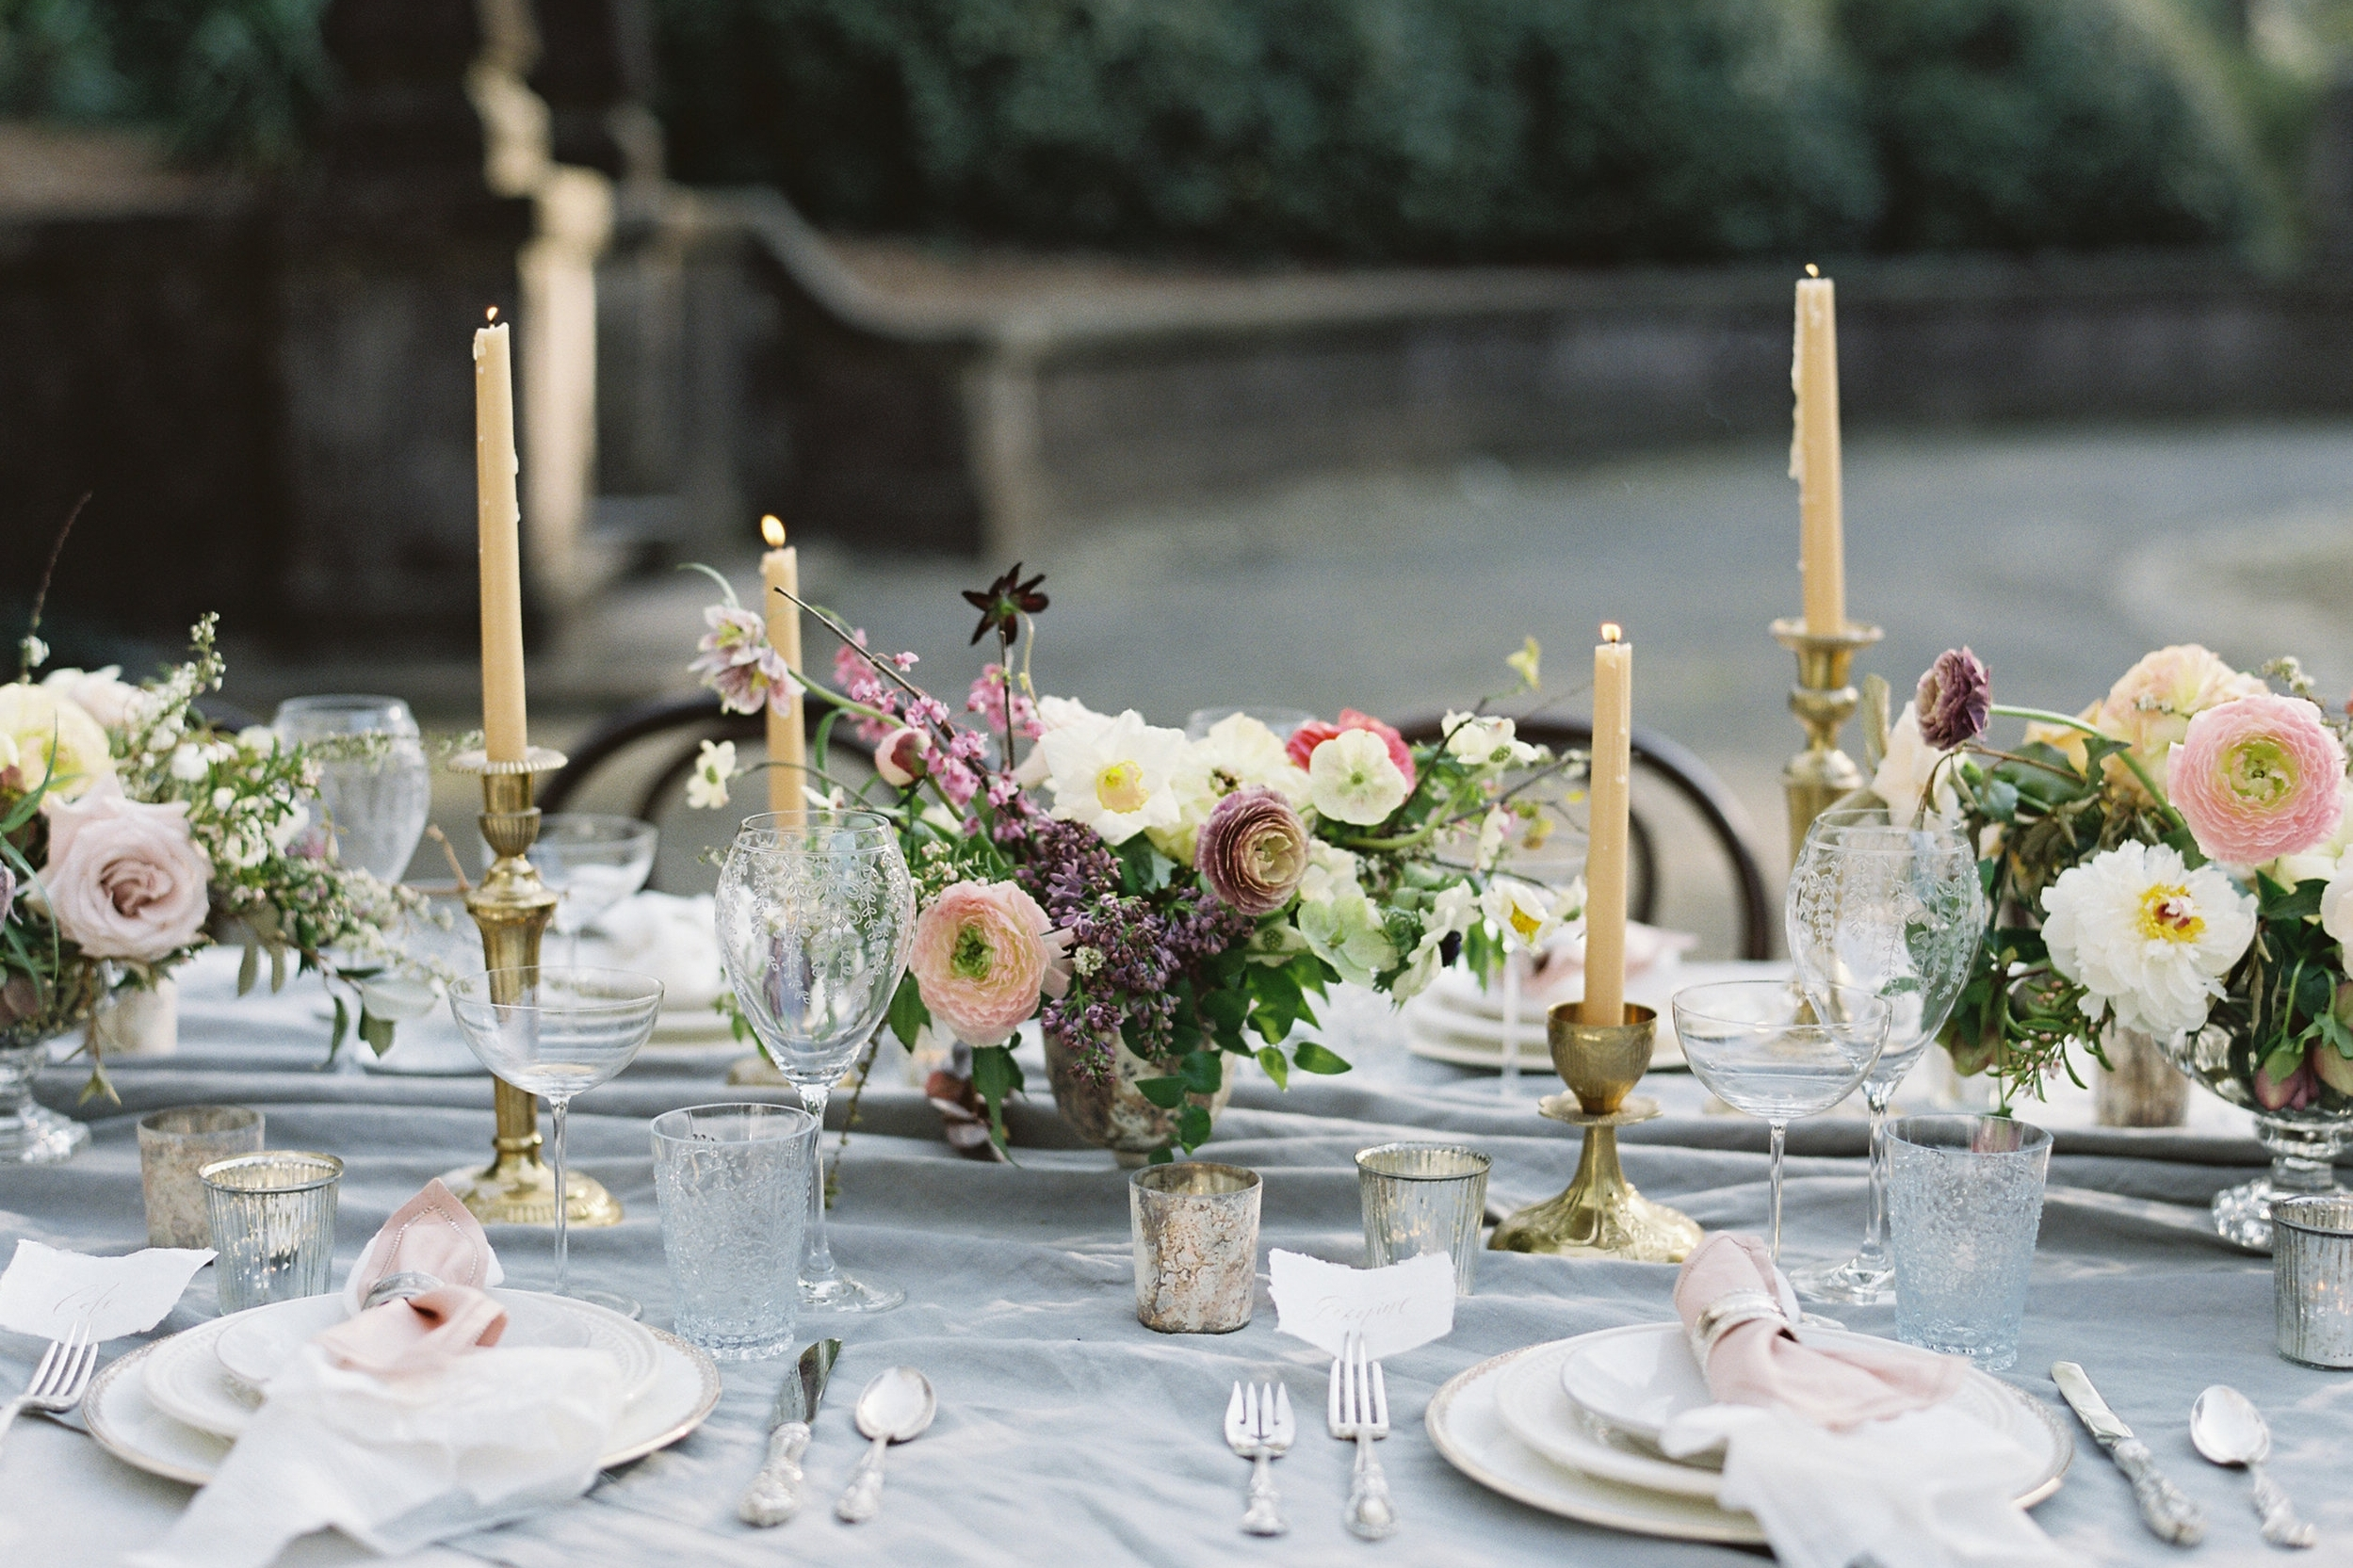 Tabletop & gatherings - Setting tables and designing gatherings for weddings, grand and petite, intimate dinner parties, and casual affairs.